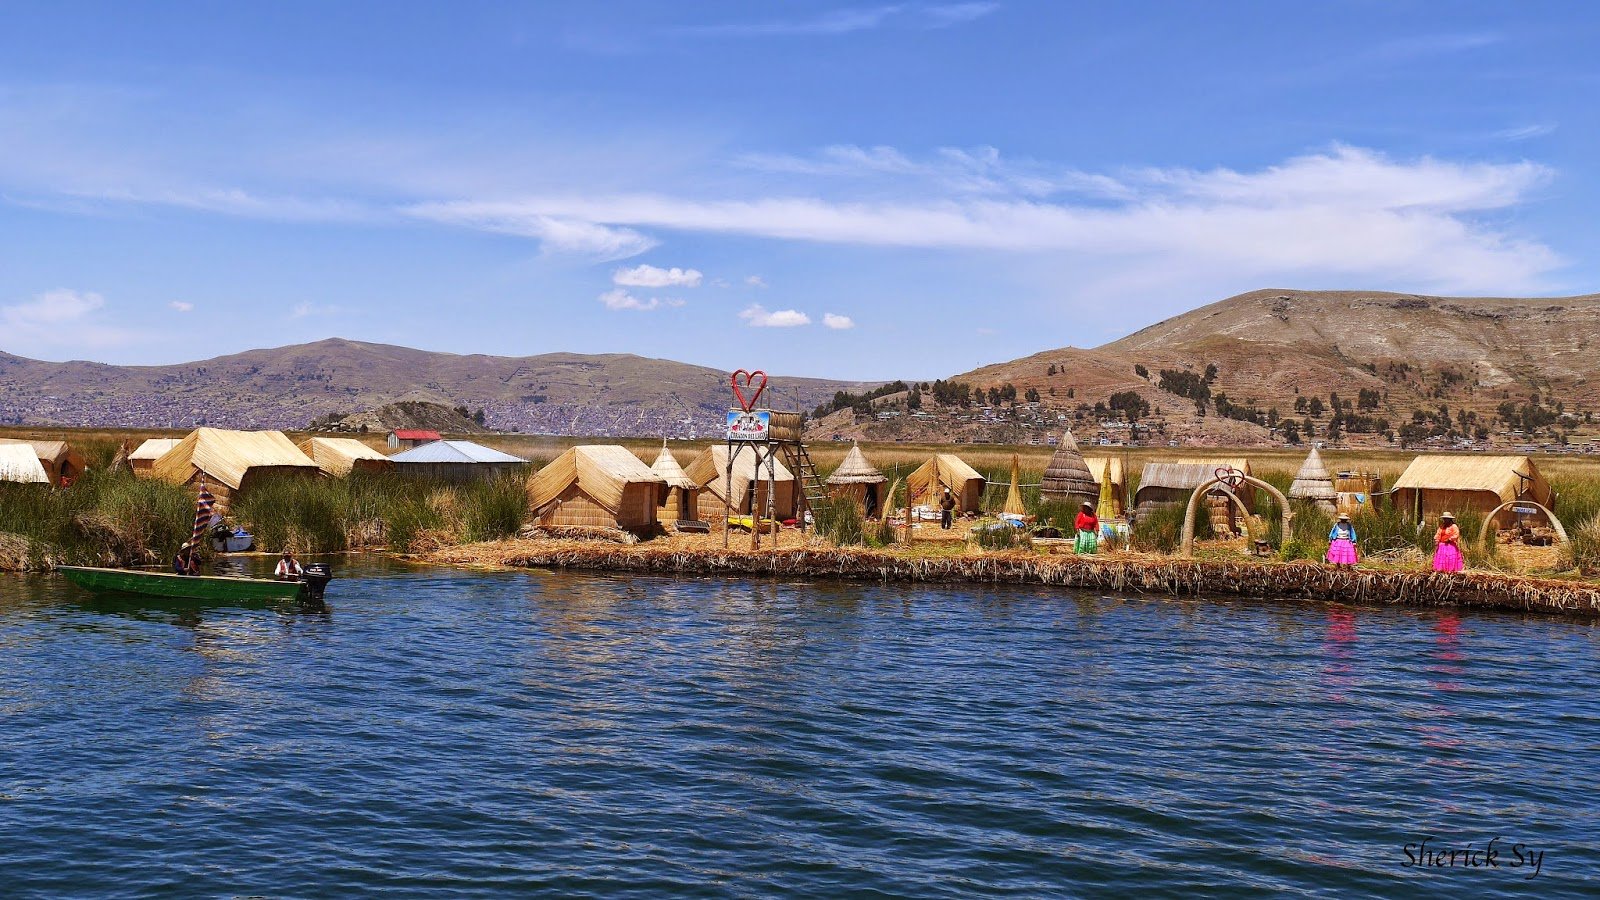 Floating Islands of Uros, Lake Titicaca, Peru